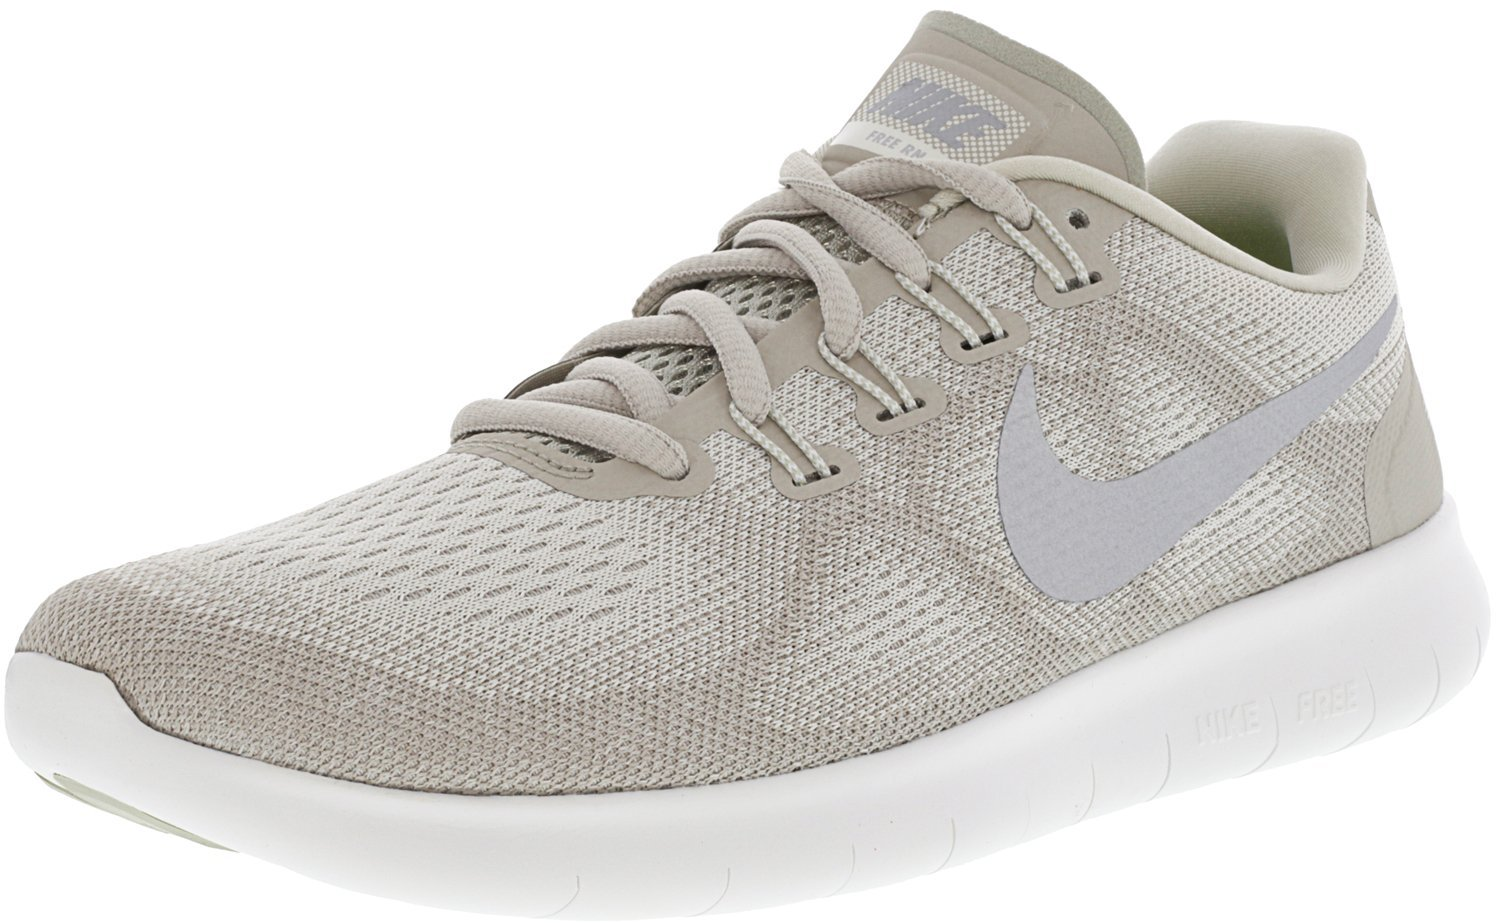 NIKE Women's Shoe Free RN 2017 Running Shoe Women's B01N0V2ZOU 7.5 B(M) US|Sail/Metallic Silver/Pale Grey/Summit White e8566e